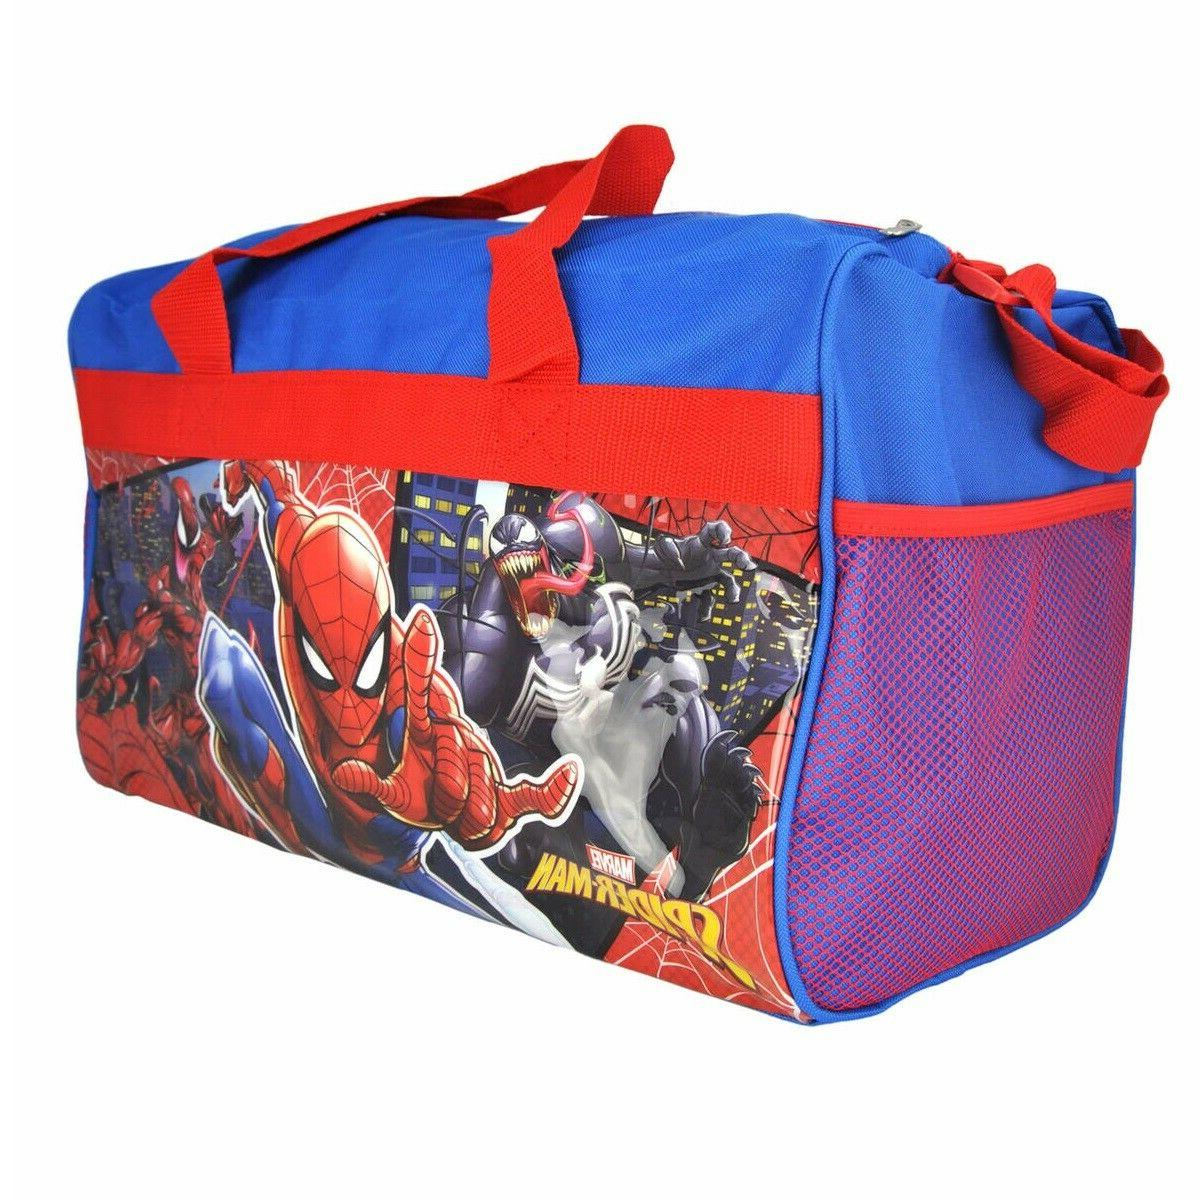 Marvel Spider-man Venom Carnage Kids Travel Diaper Gym